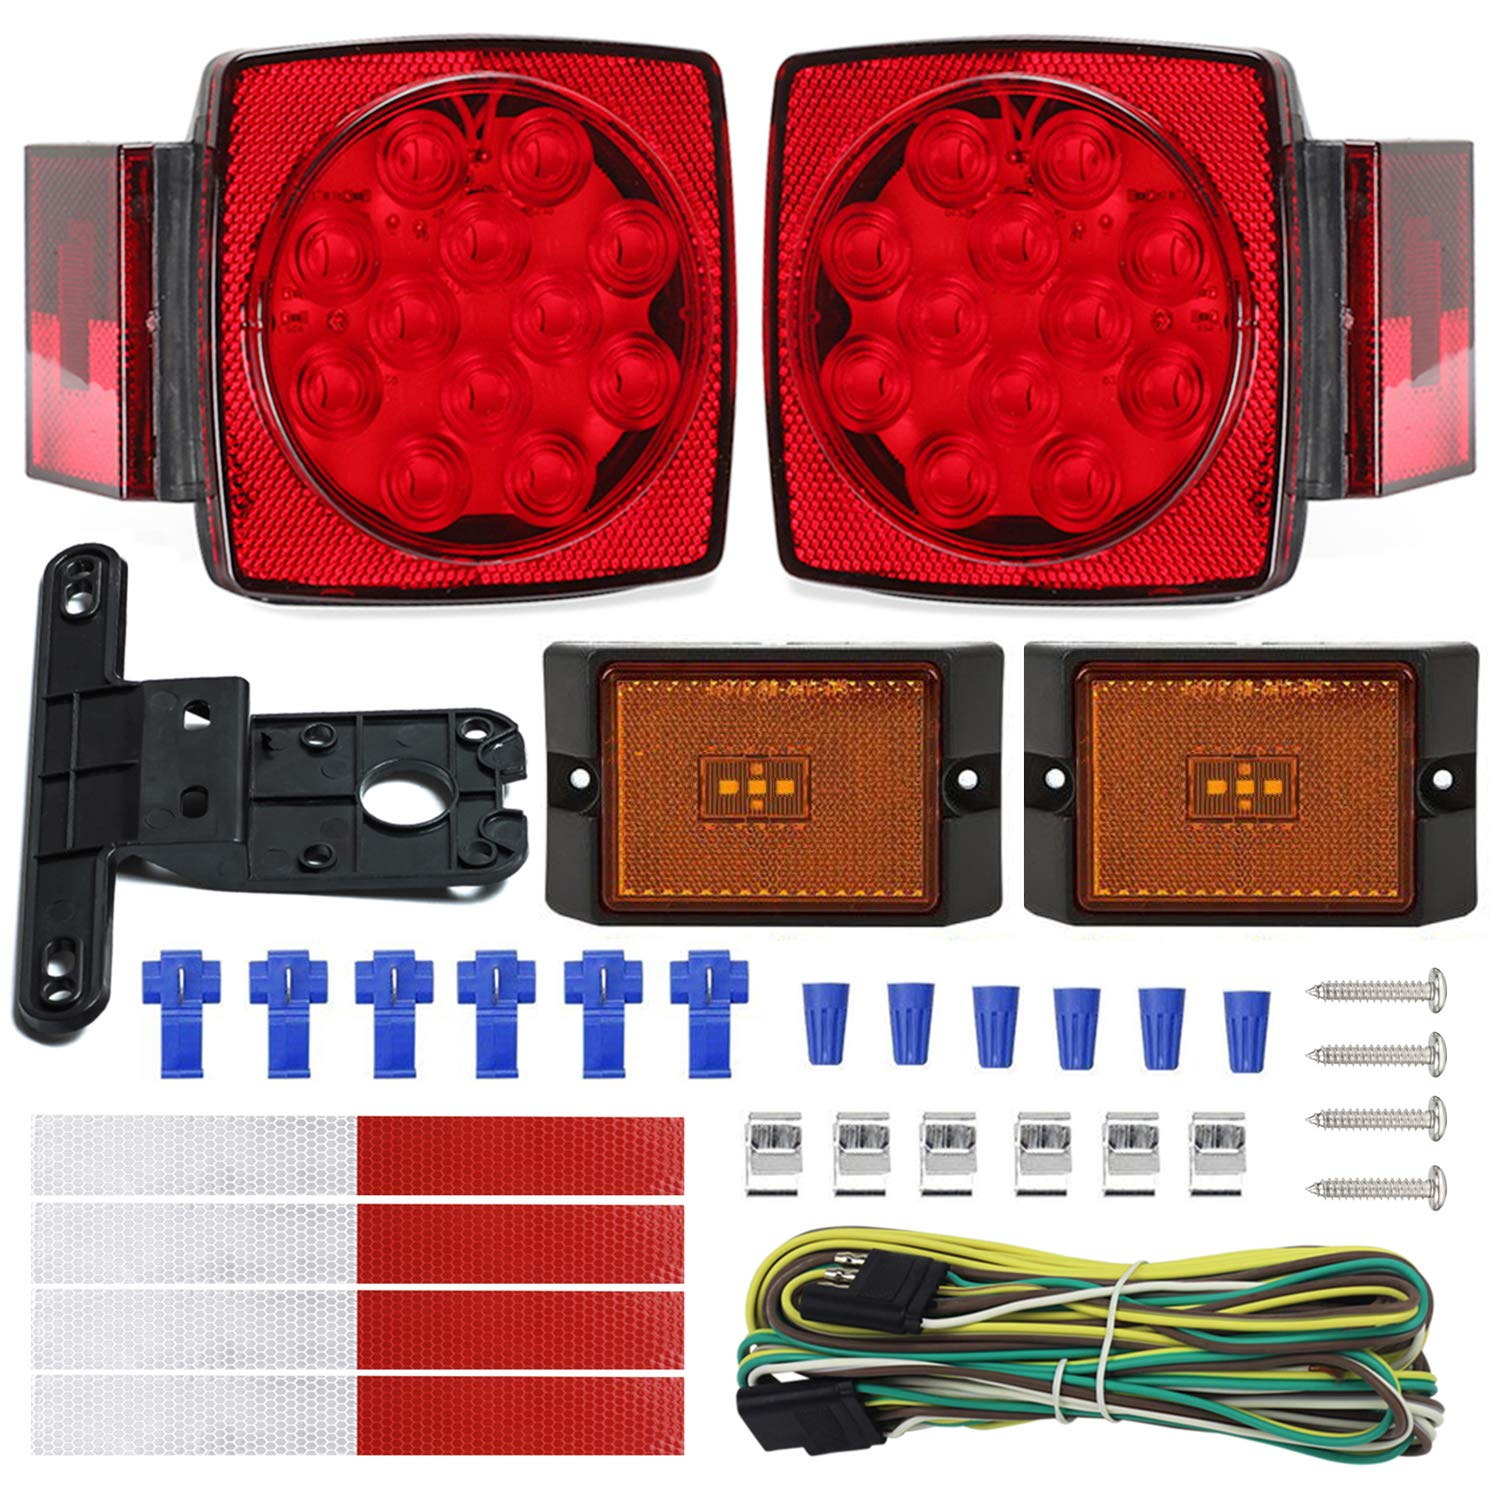 Nisuns Submersible Trailer Tail Lights Kit Waterproof 12v Led Wiring With Harness Combination Brake